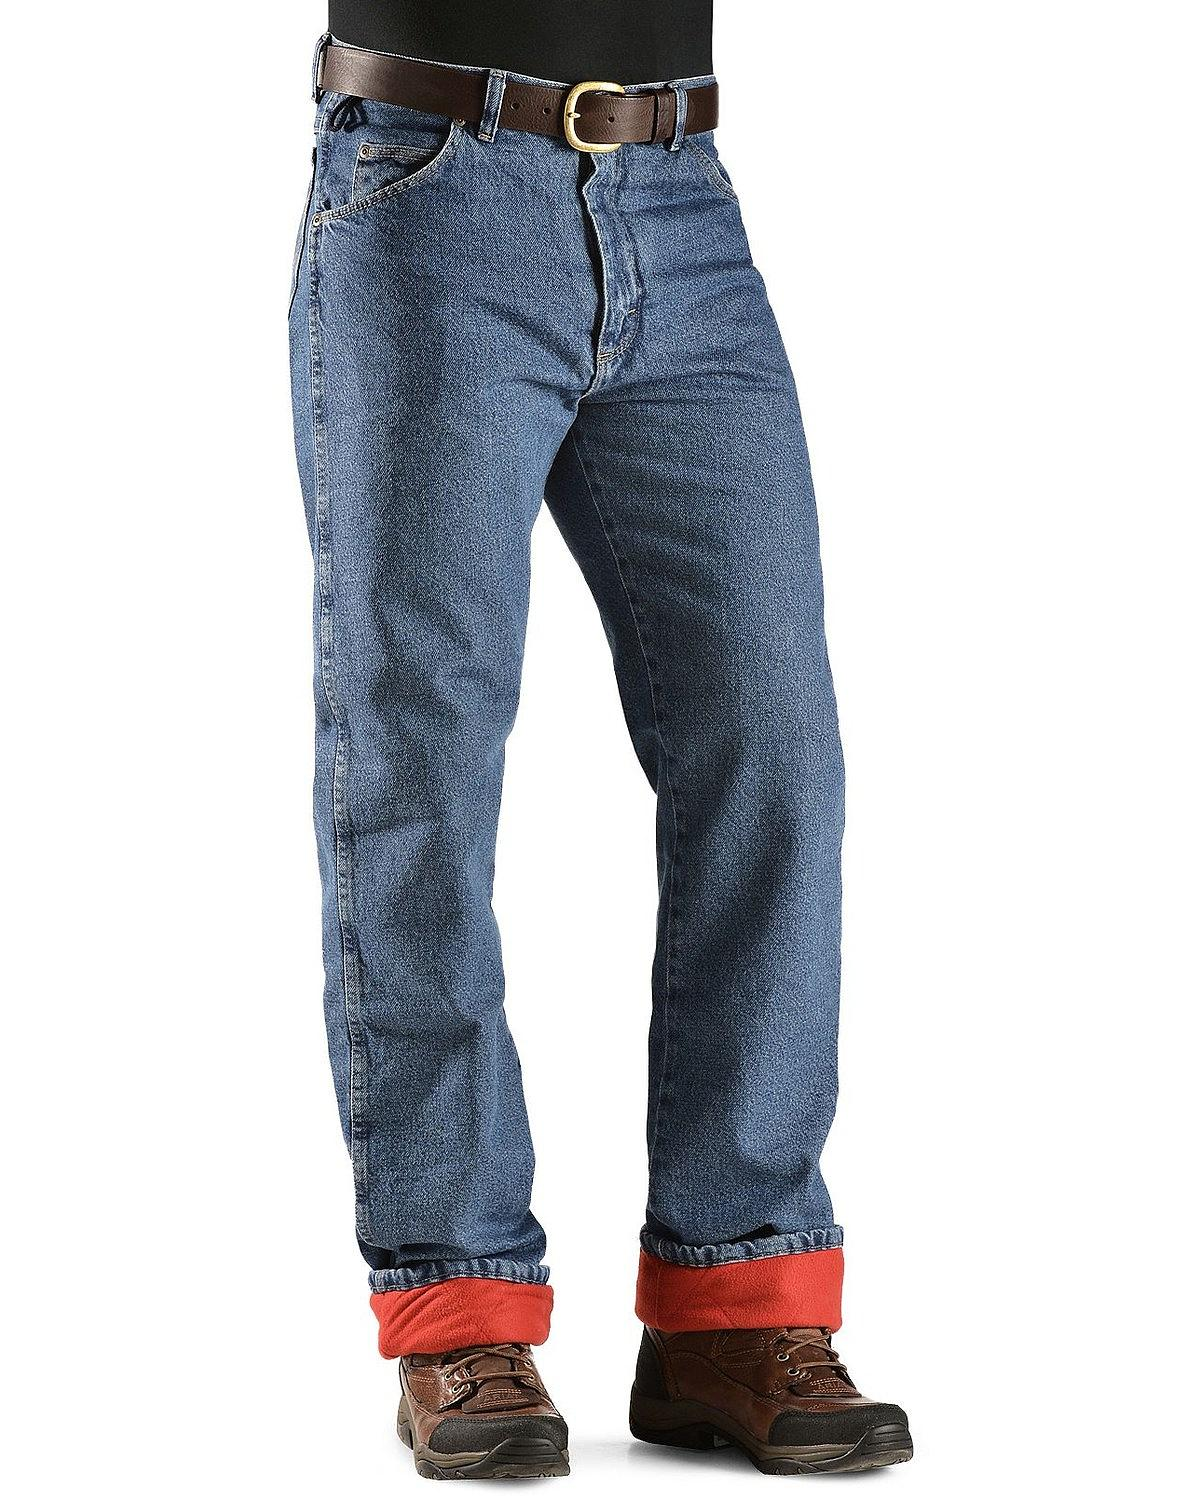 e9f3b33f Wrangler Rugged Wear Thermal Lined Jeans 42 X 30 Relaxed Fit ...